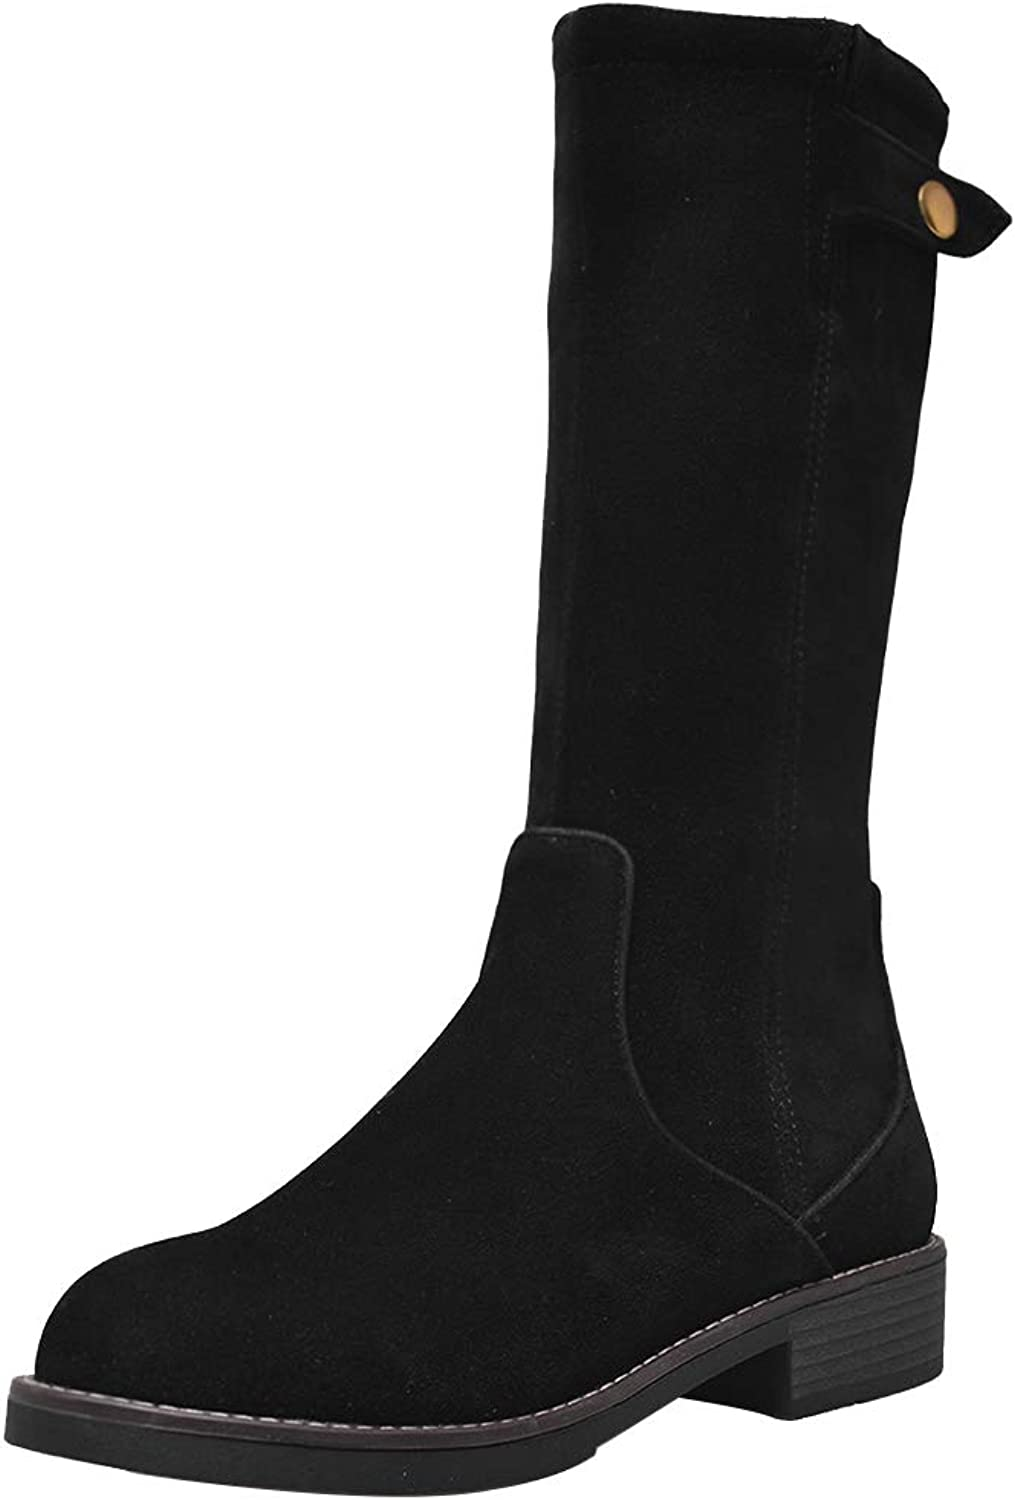 AicciAizzi Women High Top Boots Zipper Booties Puppy Heel